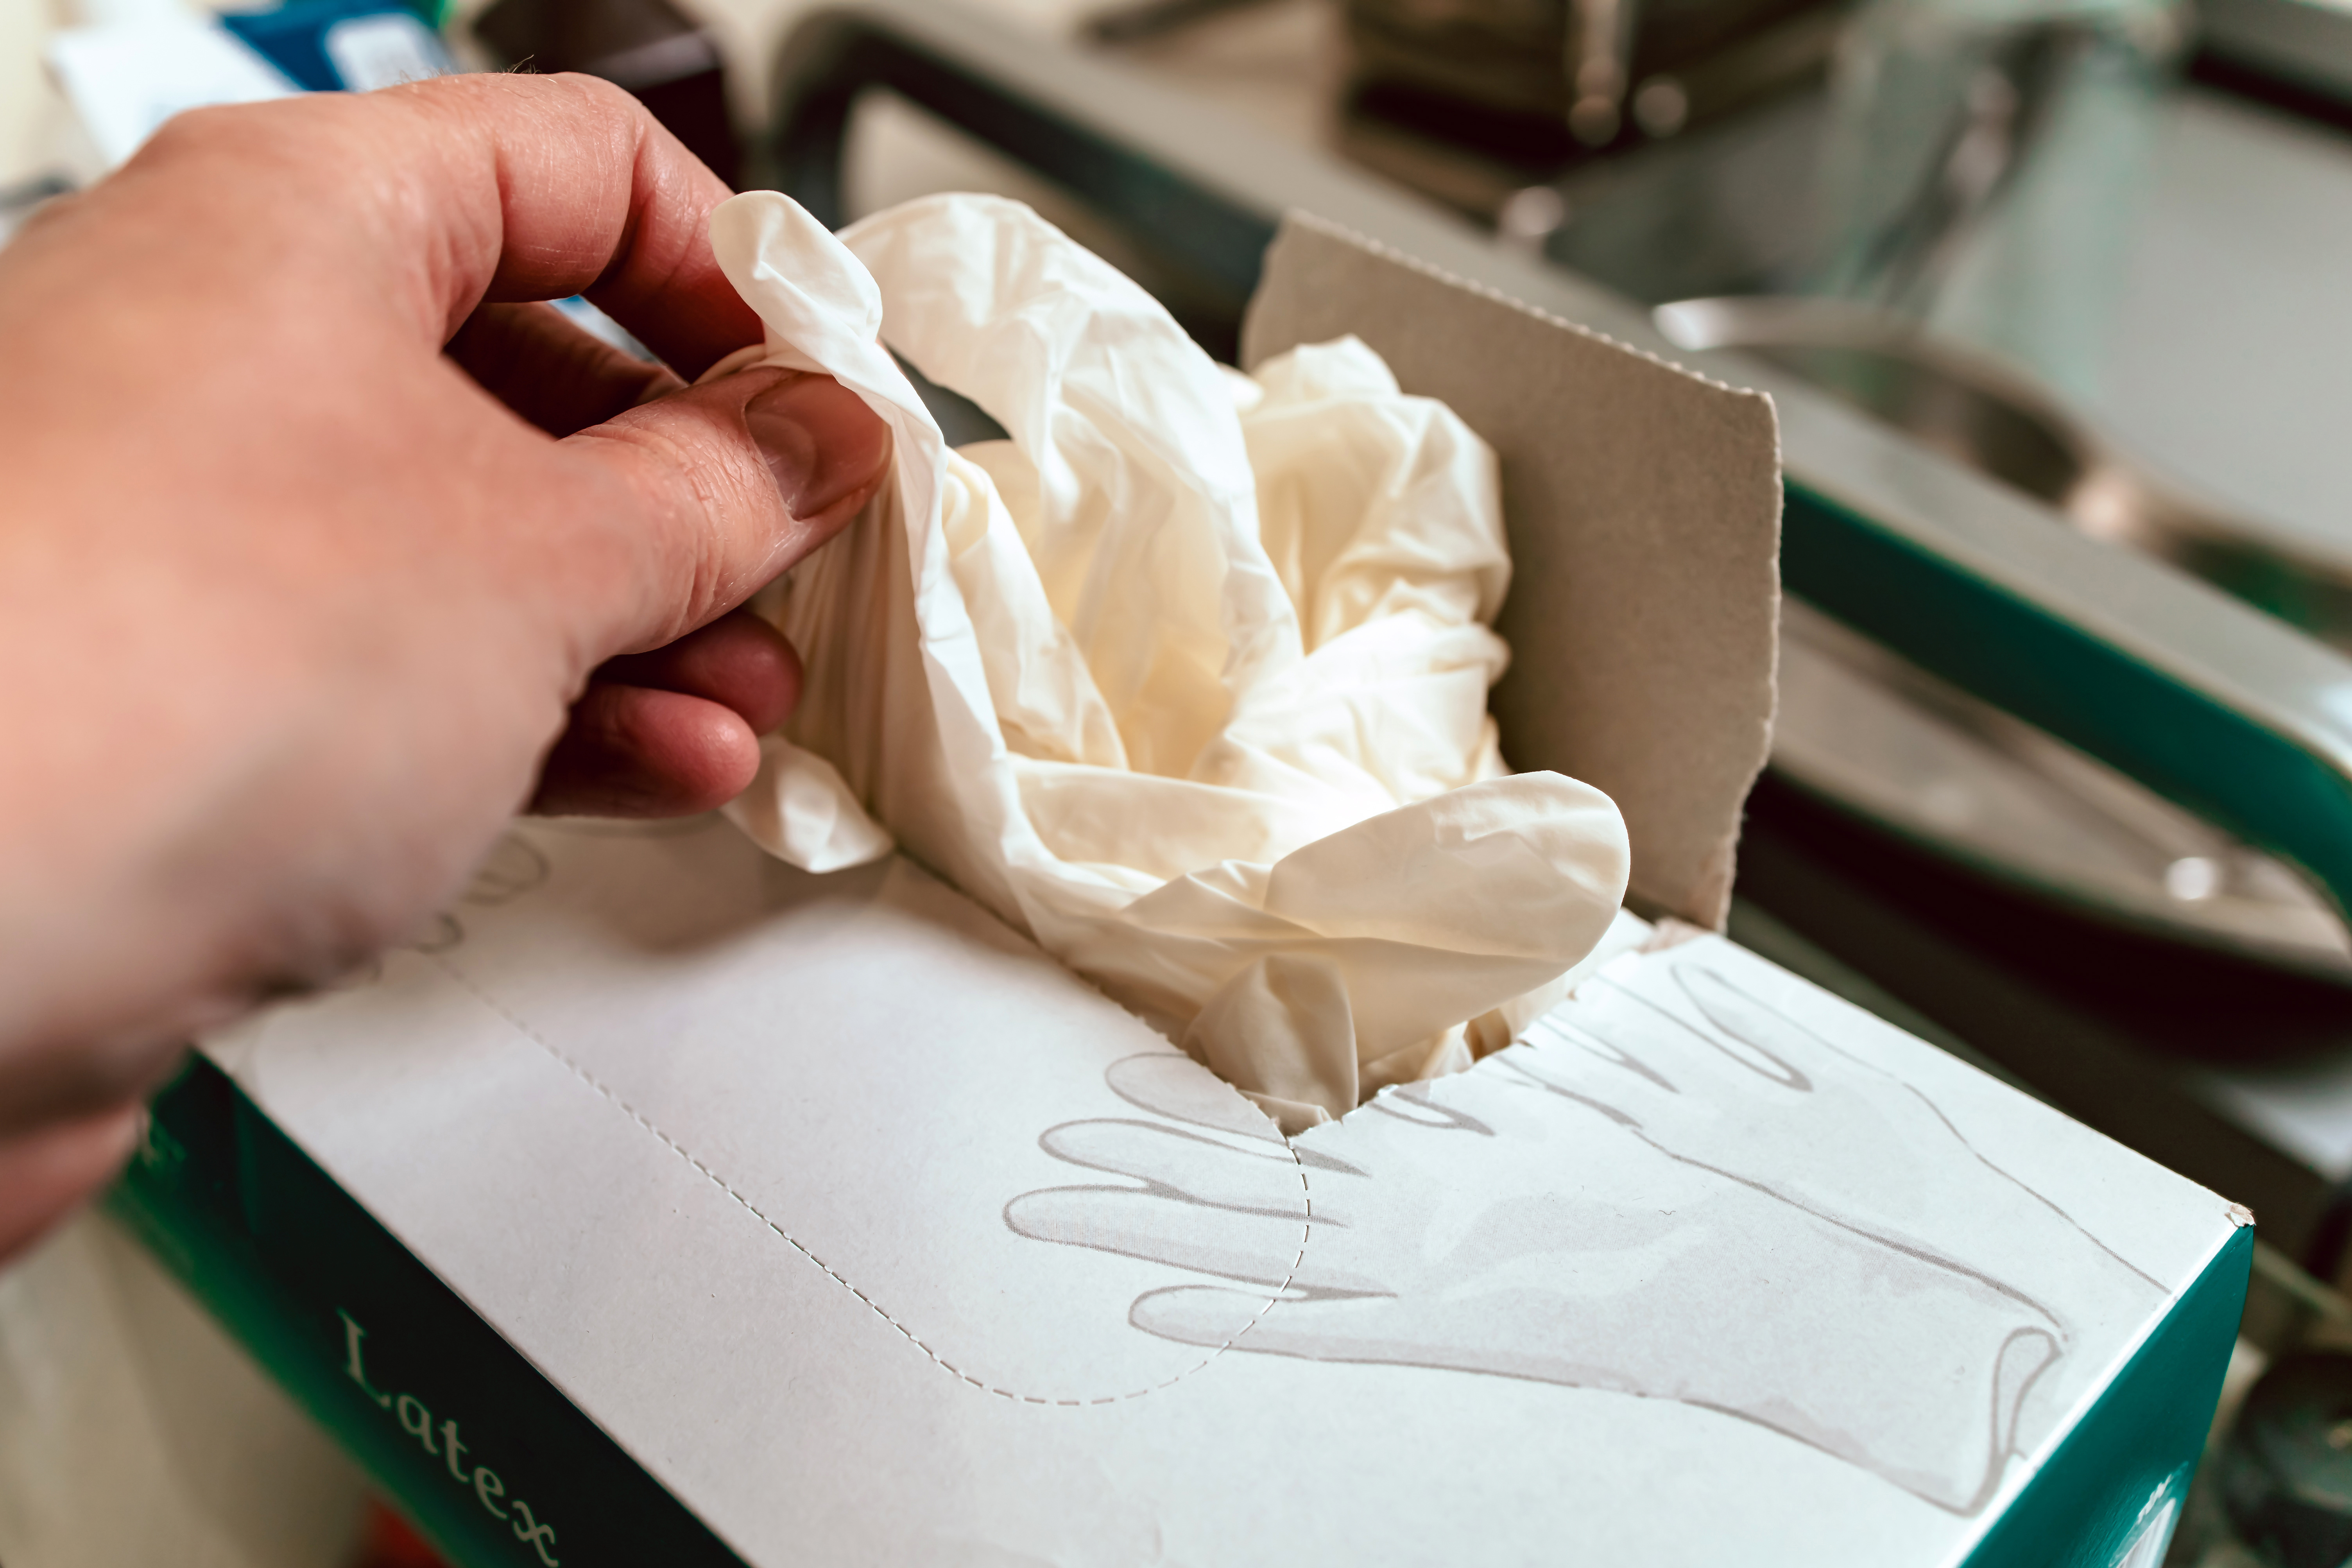 A hand takes a protective white latex glove from a box of gloves.